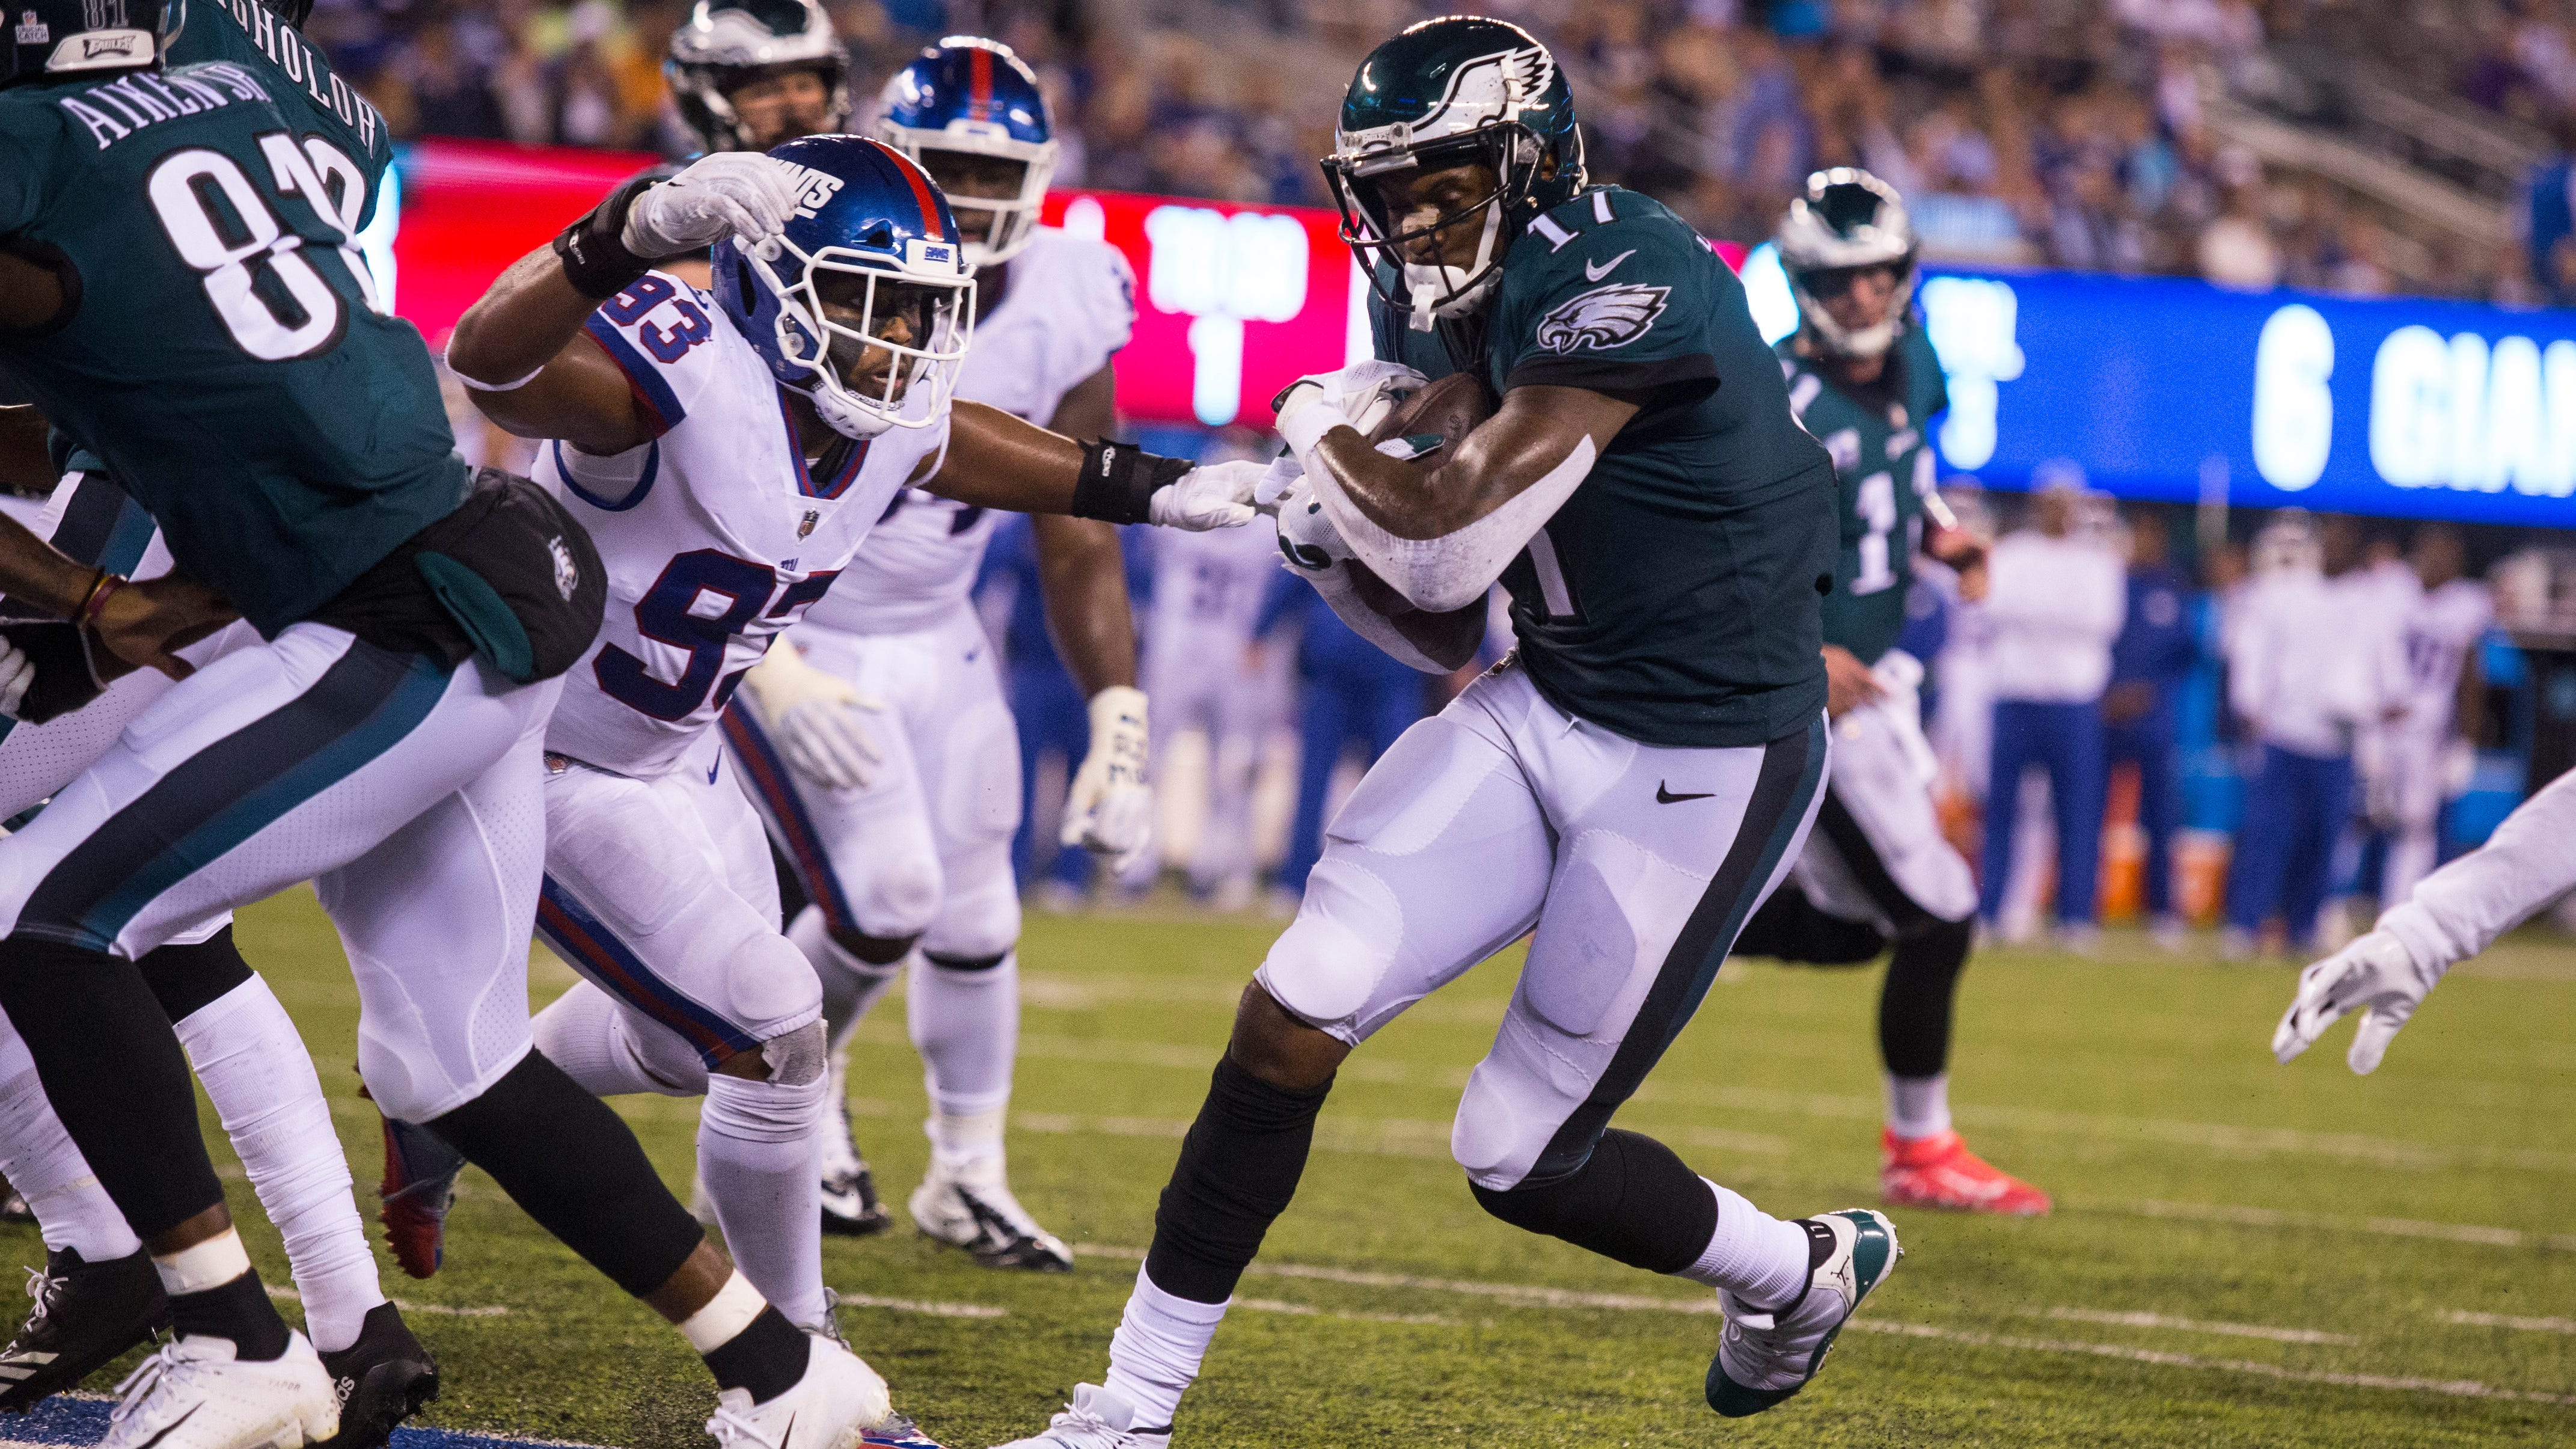 The Philadelphia Eagles easily defeated the New York Giants on Thursday night, but injuries keep mounting for the defending Super Bowl champions.